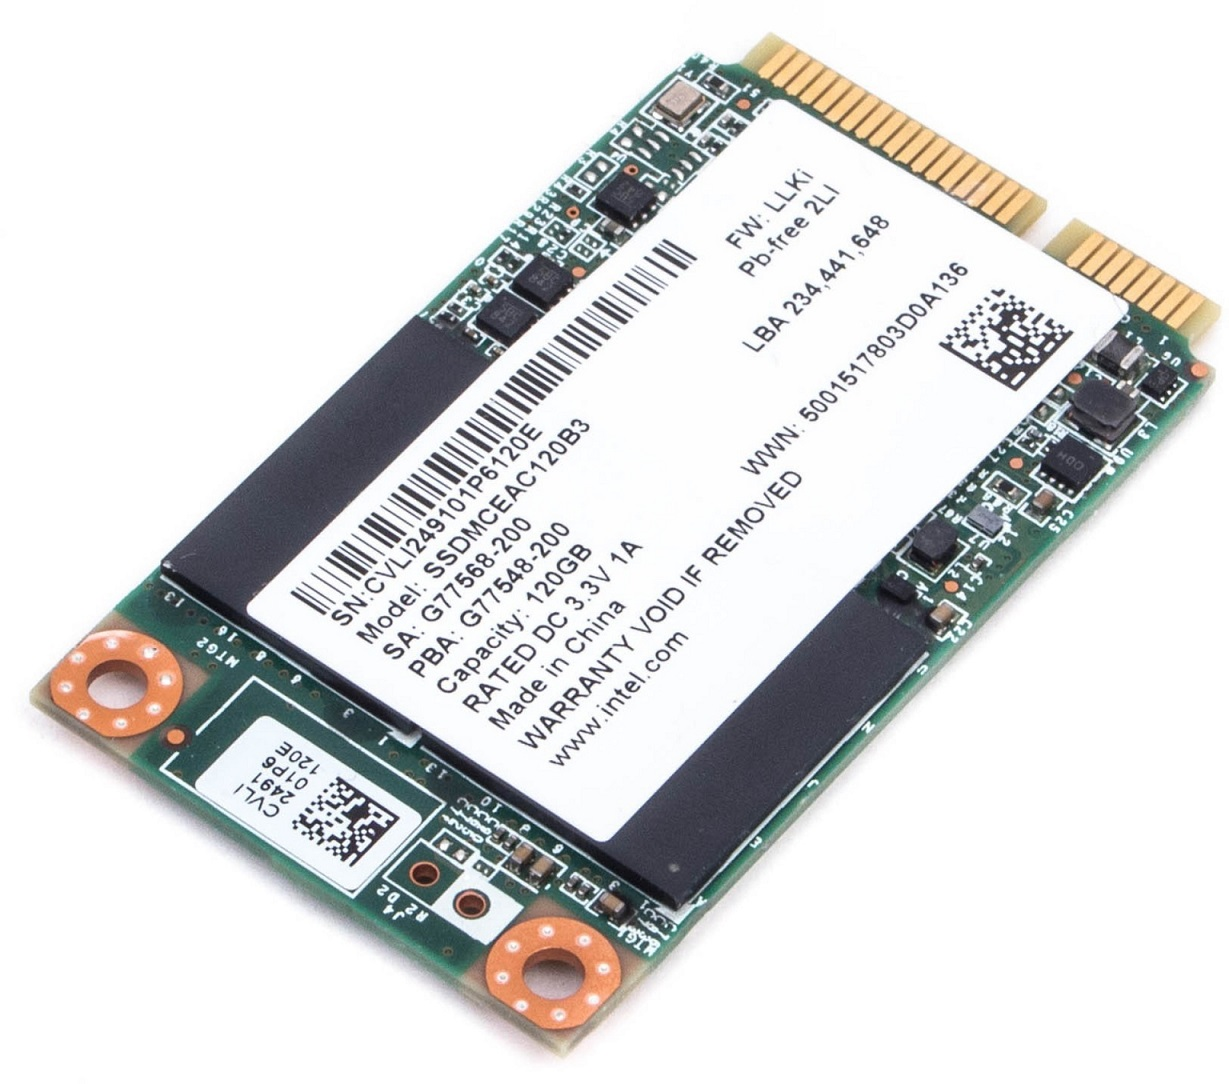 SSD mSATA - Intel 525 / 120GB